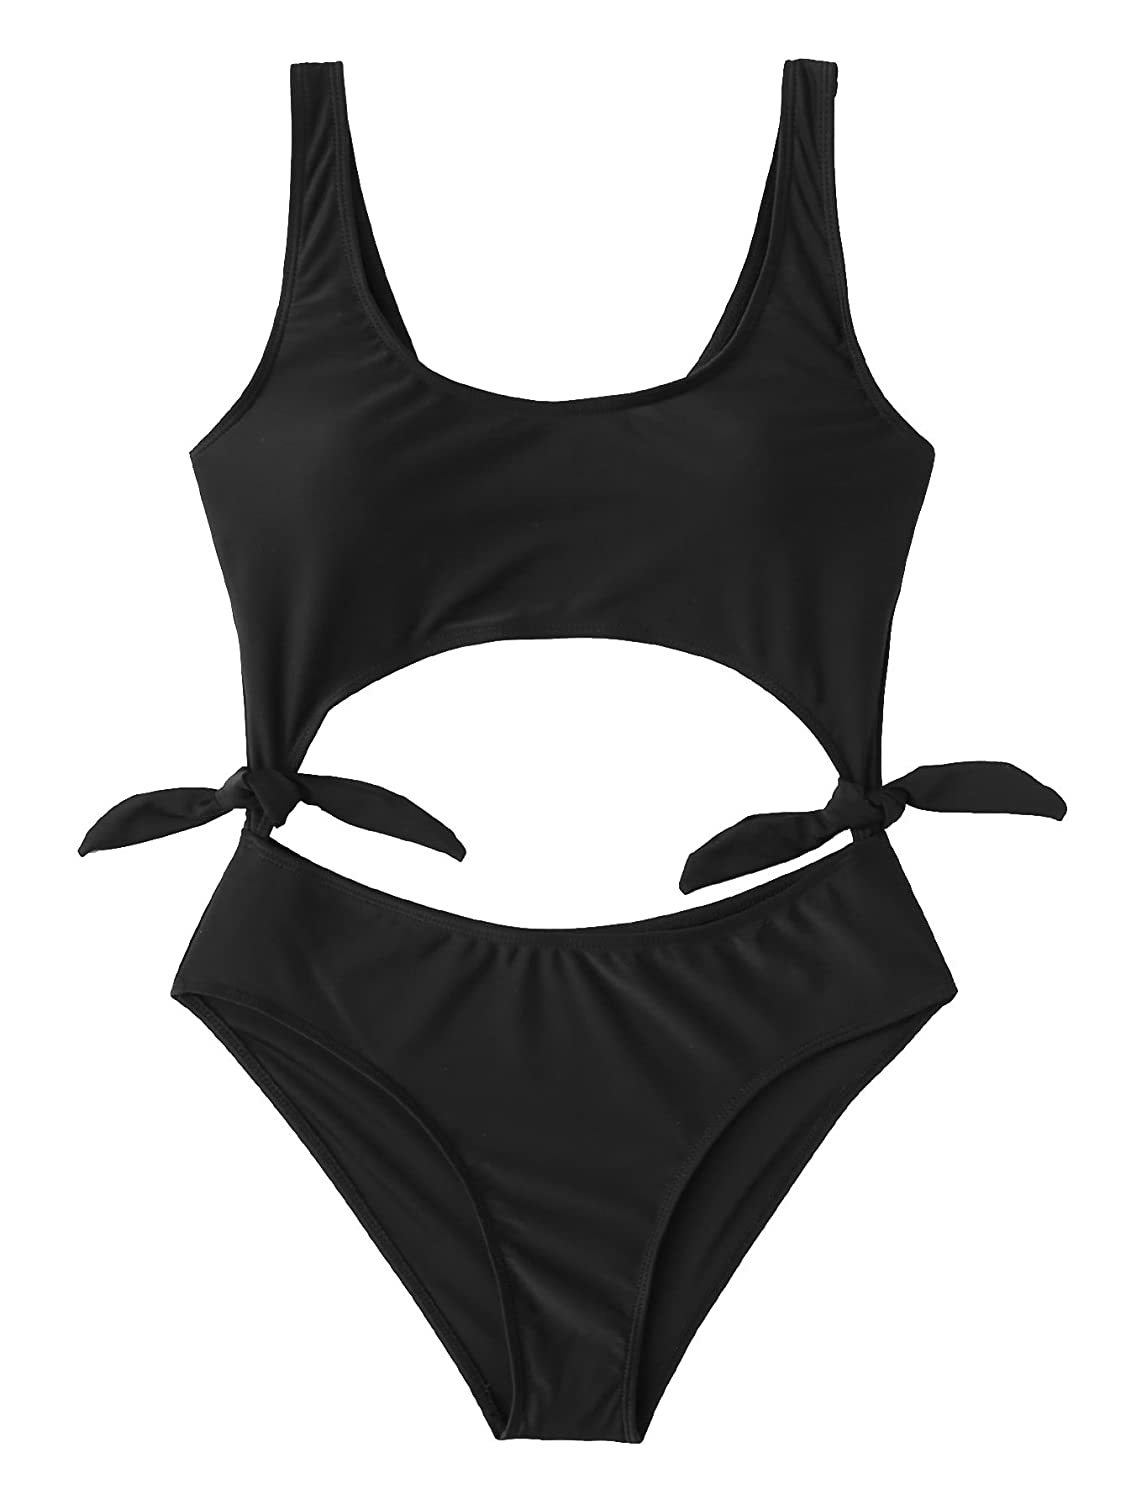 e925576aaf10 Features: Plain pattern,tie sides and cut out one piece swimsuit with  padding bra. Before Order:Please select your size based on the measurements  as below.